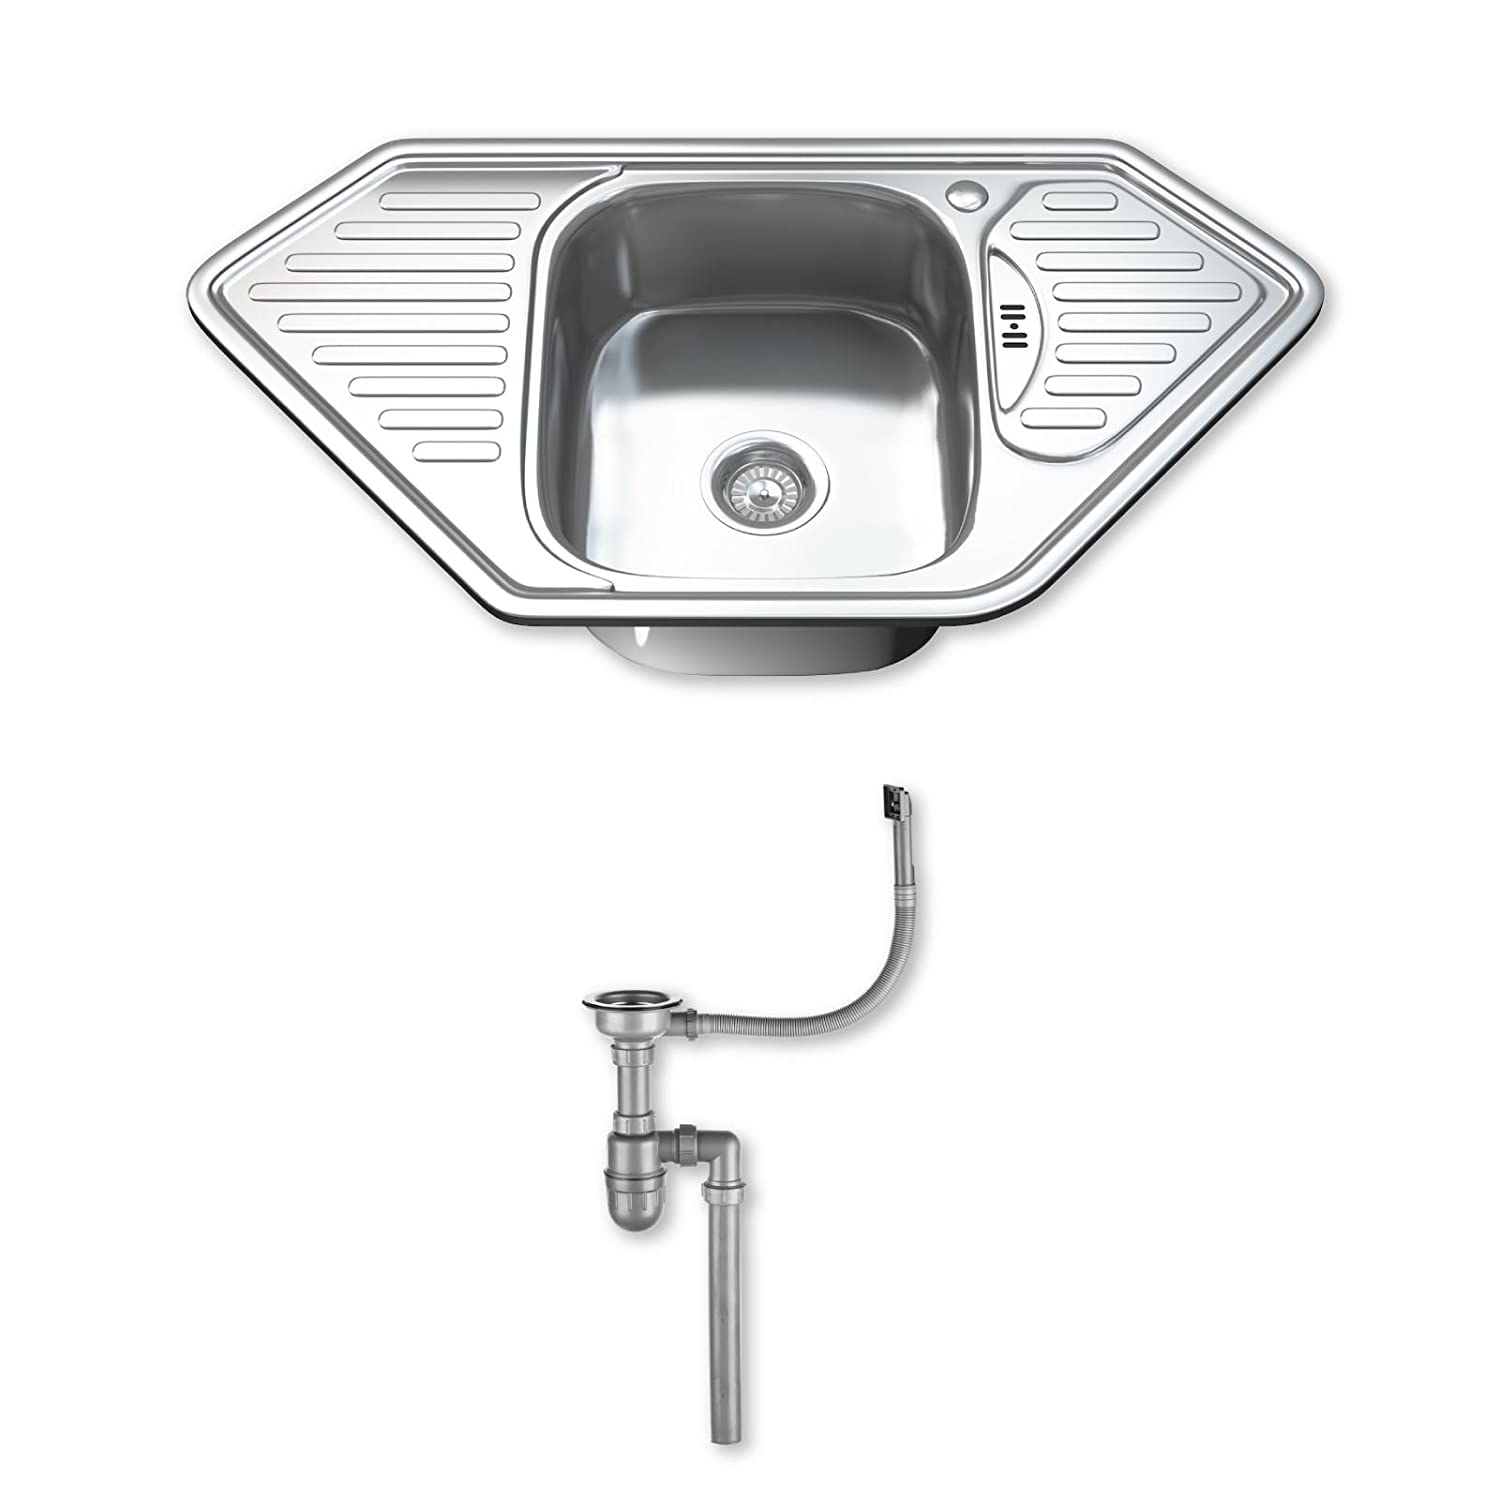 Wonderful Dihl KS 1071 WST1 1.0 Single Corner Bowl Stainless Steel Kitchen Sink With  Drainer And Waste   Chrome: Amazon.co.uk: DIY U0026 Tools